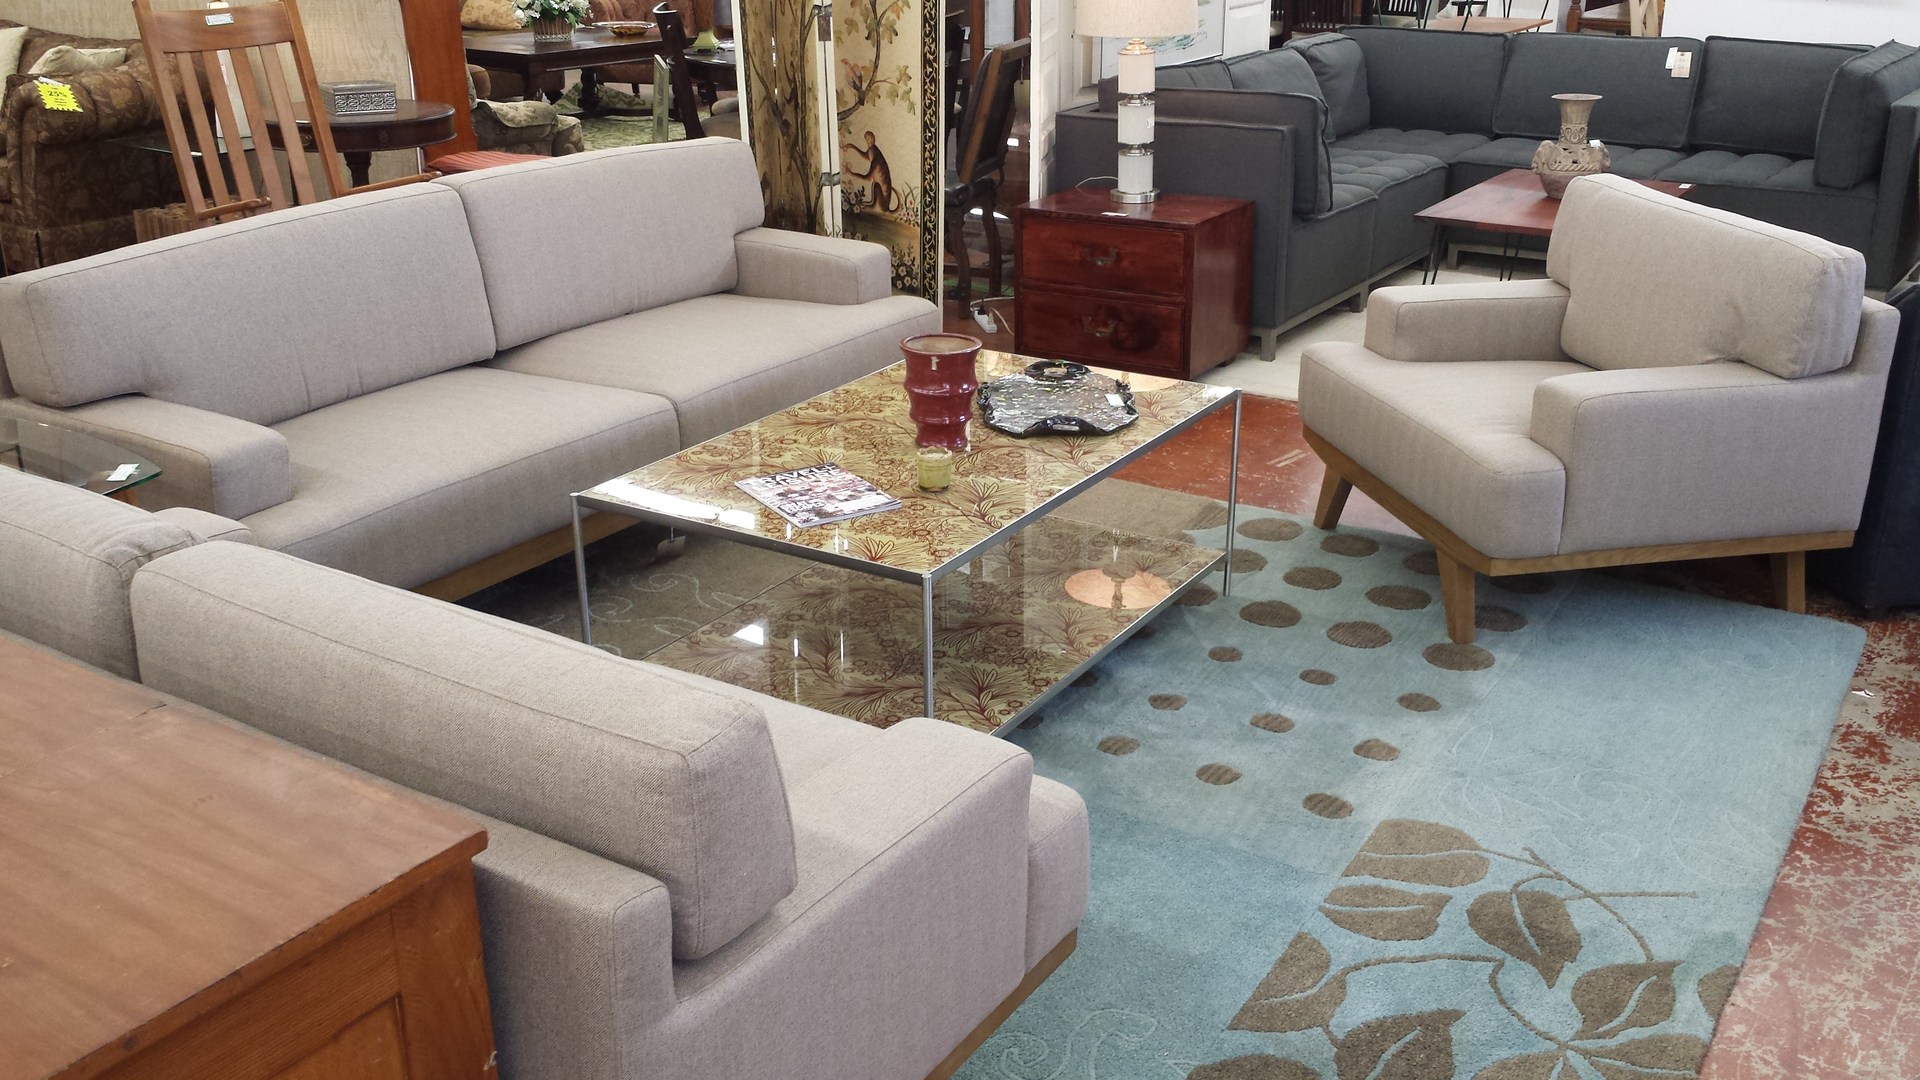 Furniture stores in chapel hill nc - Furniture Stores In Chapel Hill Nc 55